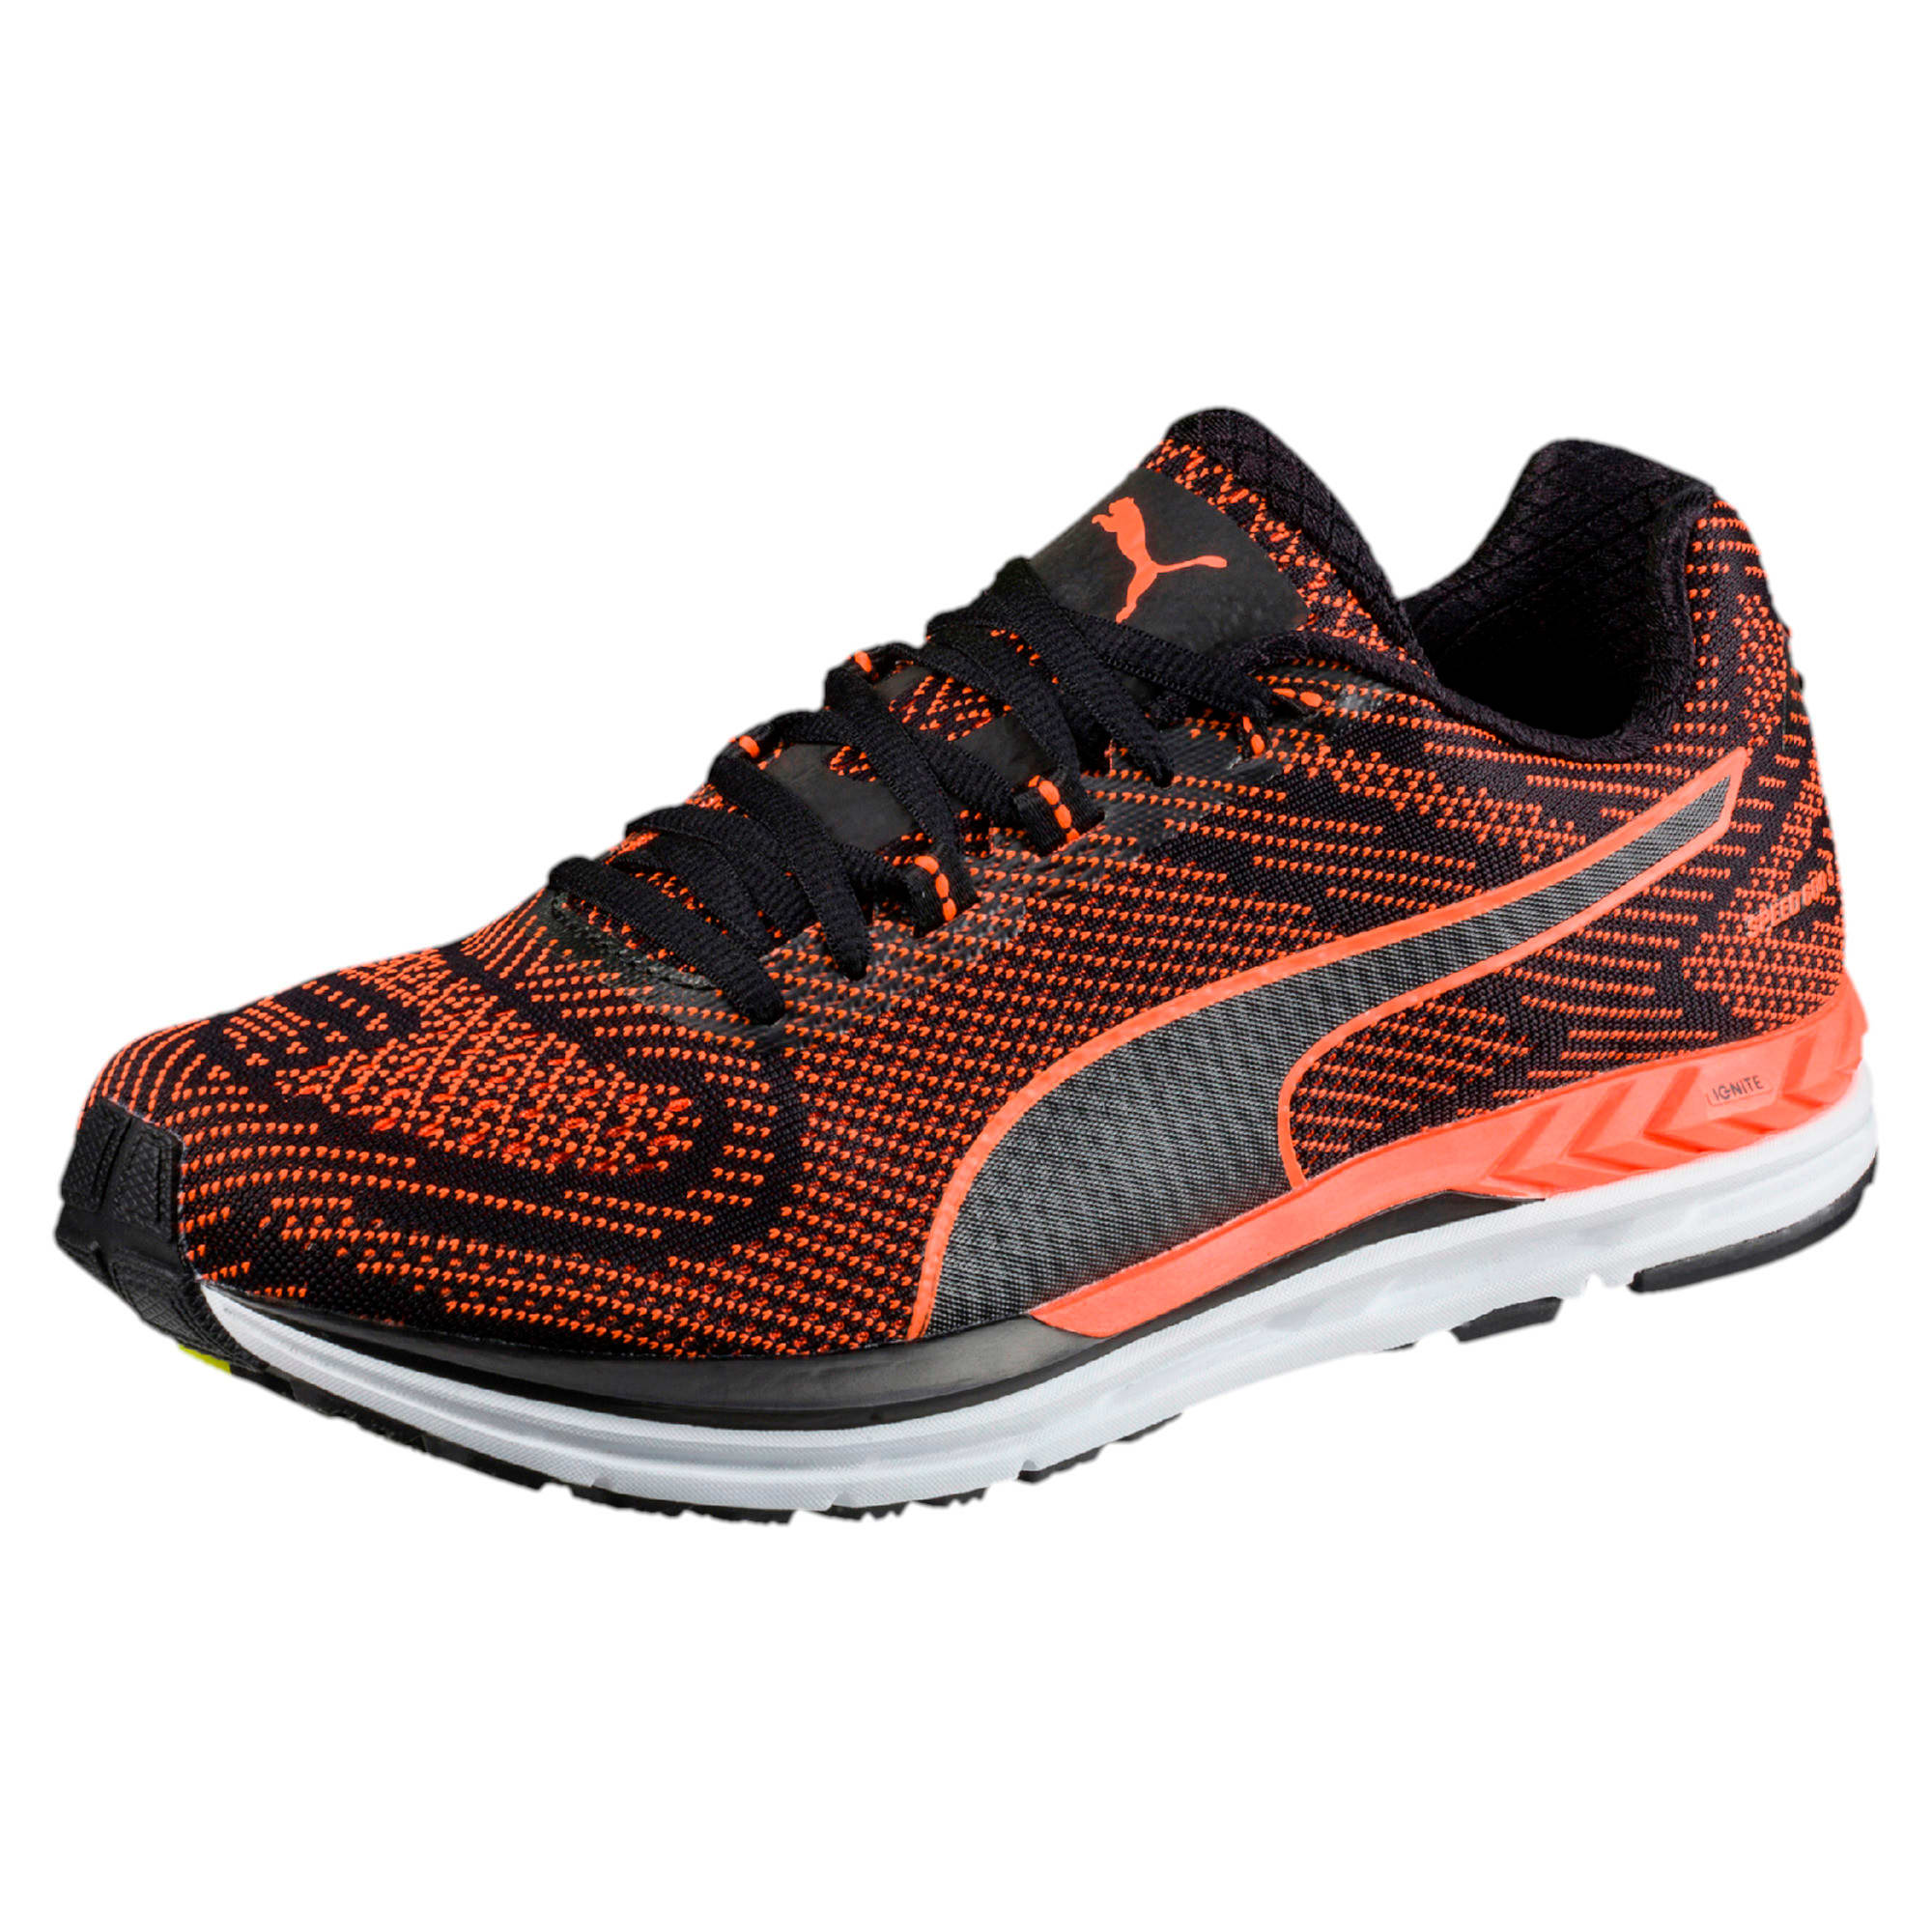 Thumbnail 1 of Speed 600 S IGNITE Men's Running Shoes, Puma Black-Shocking Orange, medium-IND